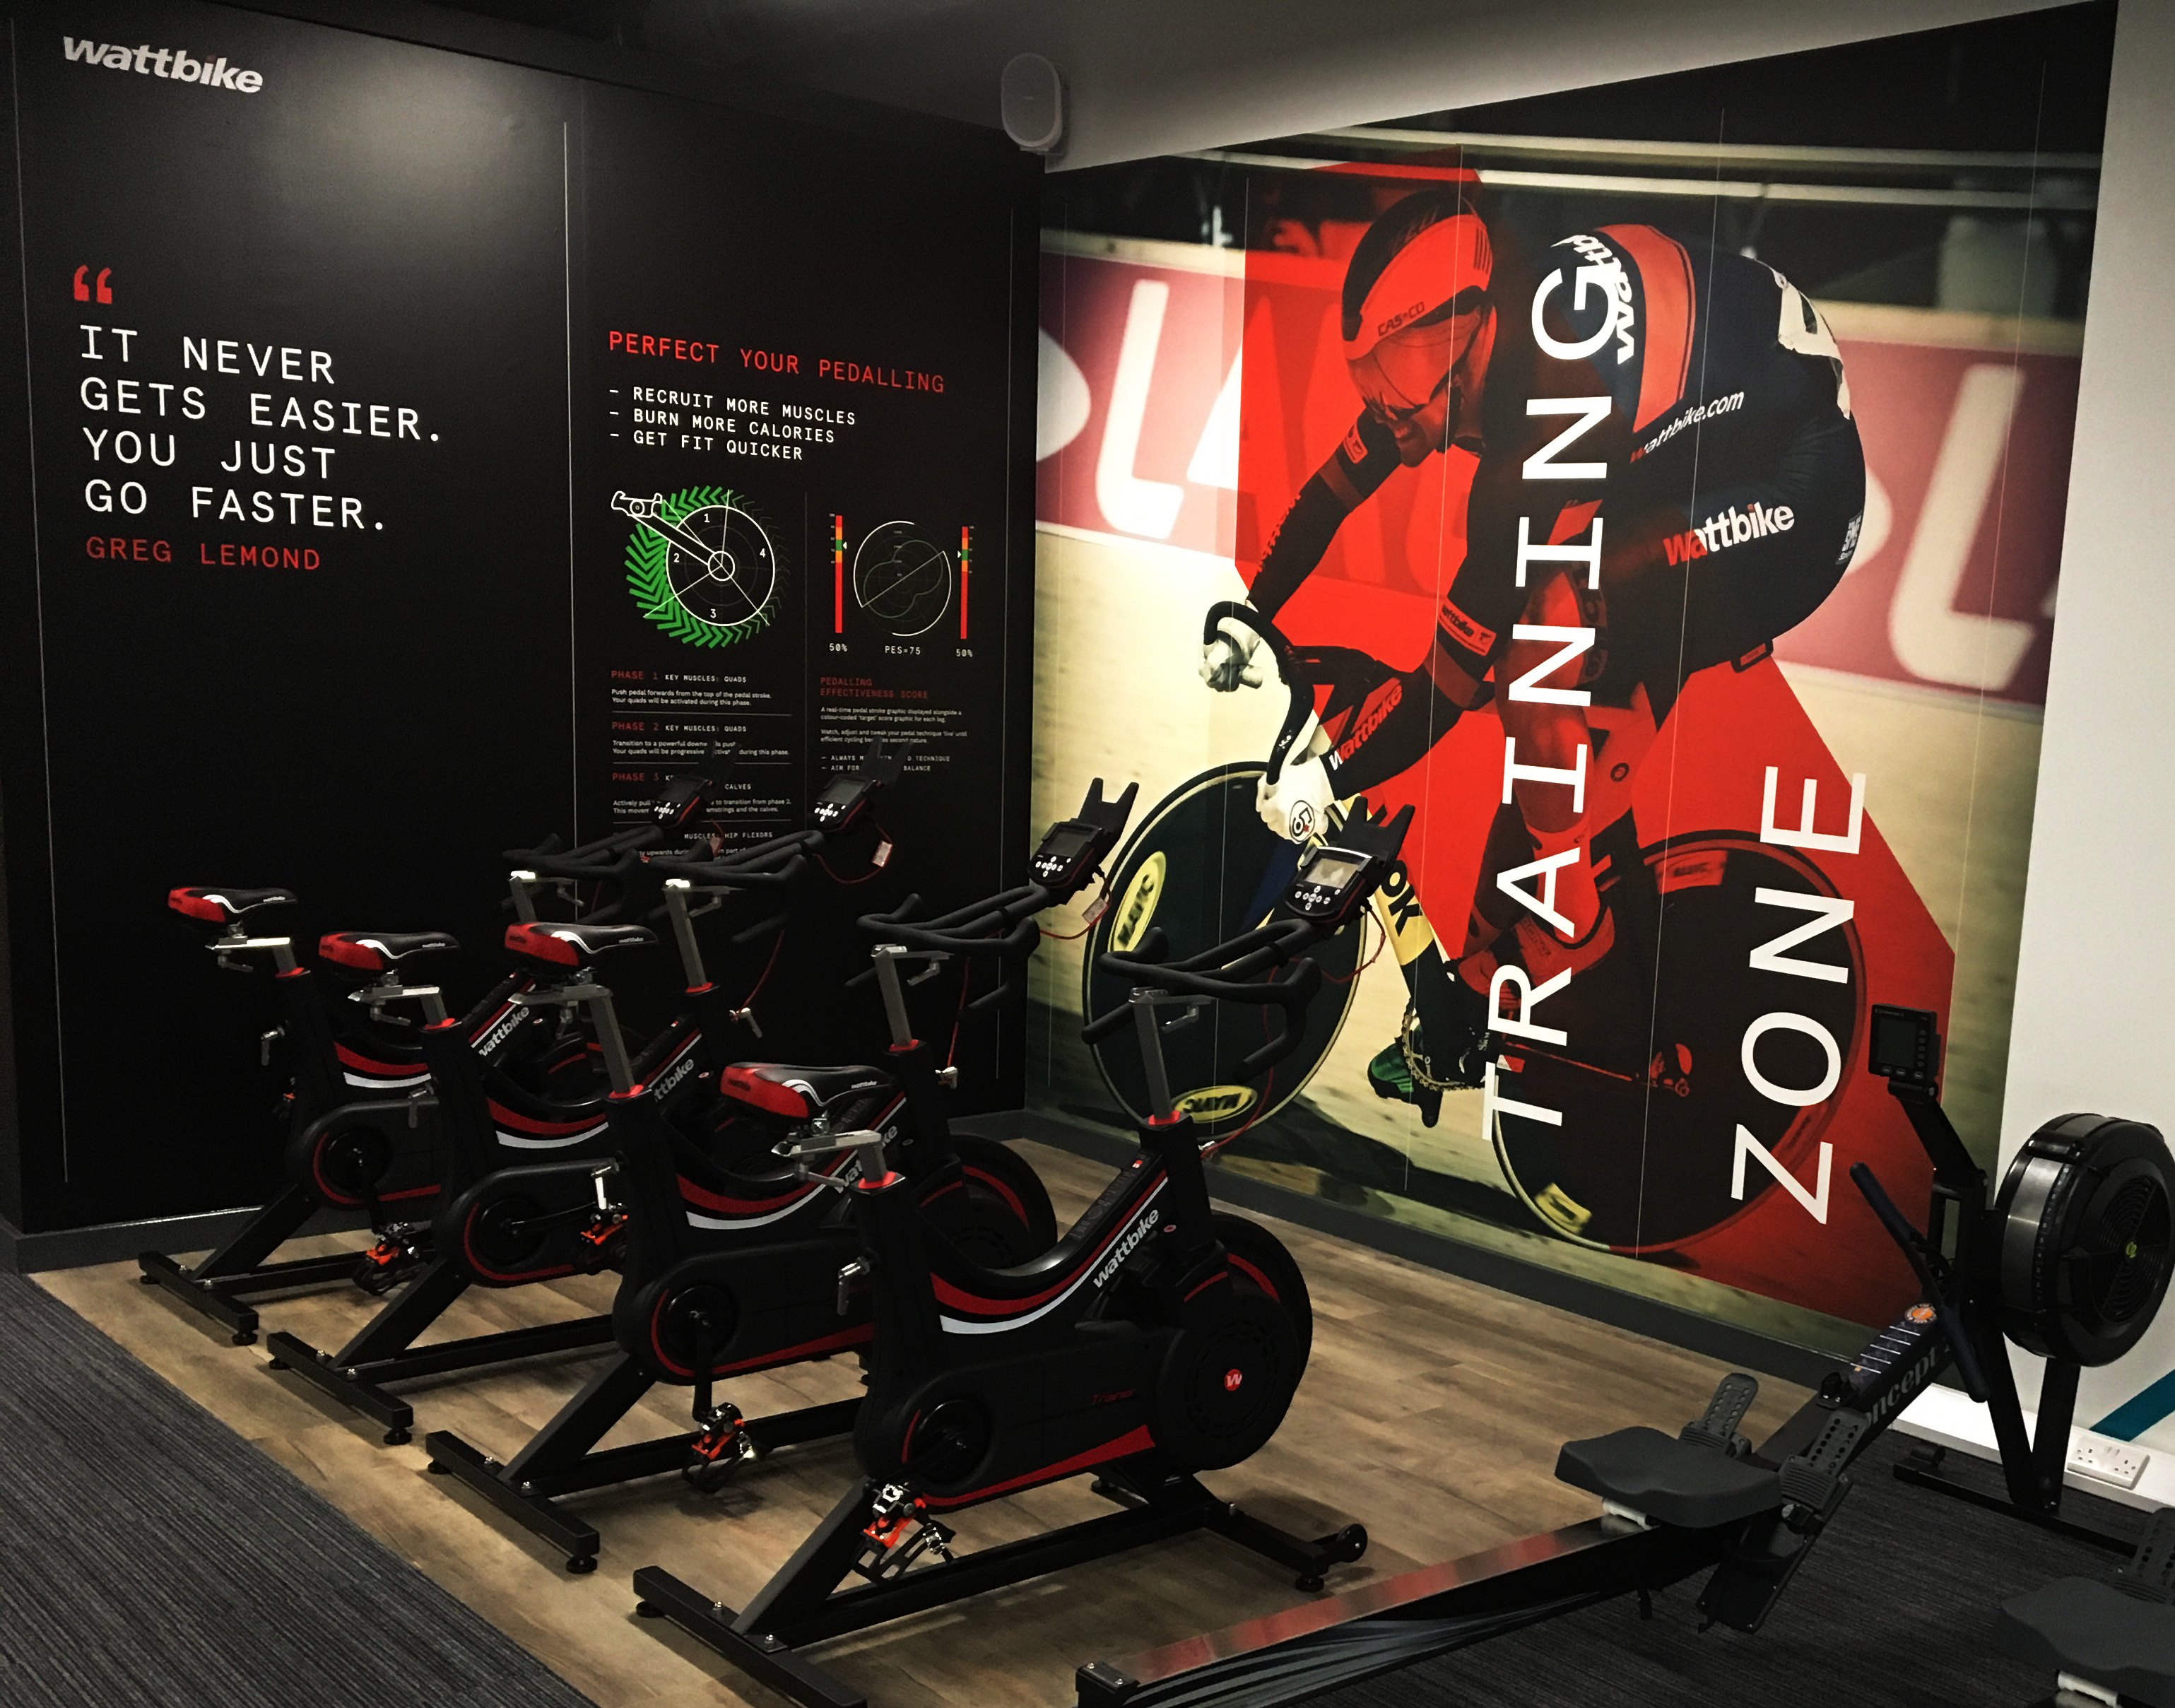 PUREGYM PRIORITISES PERFORMANCE WITH WATTBIKE ZONES